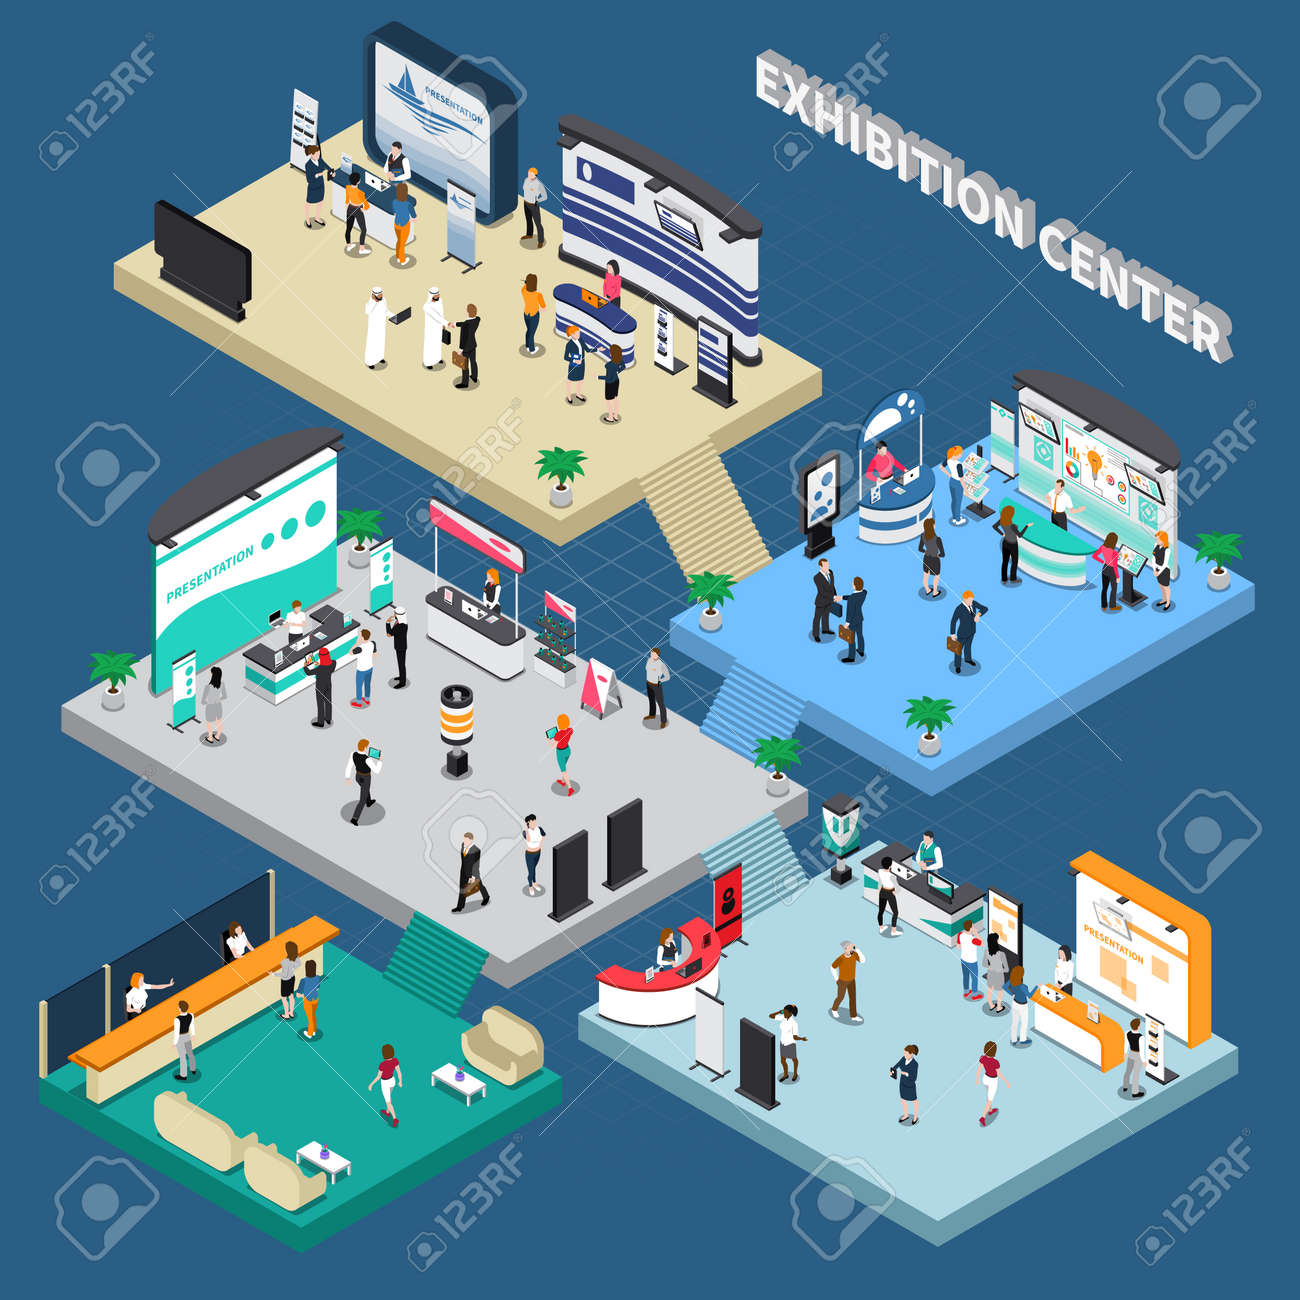 Multistory exhibition center isometric composition on blue background with exposition stands, business people, vector illustration - 165886197